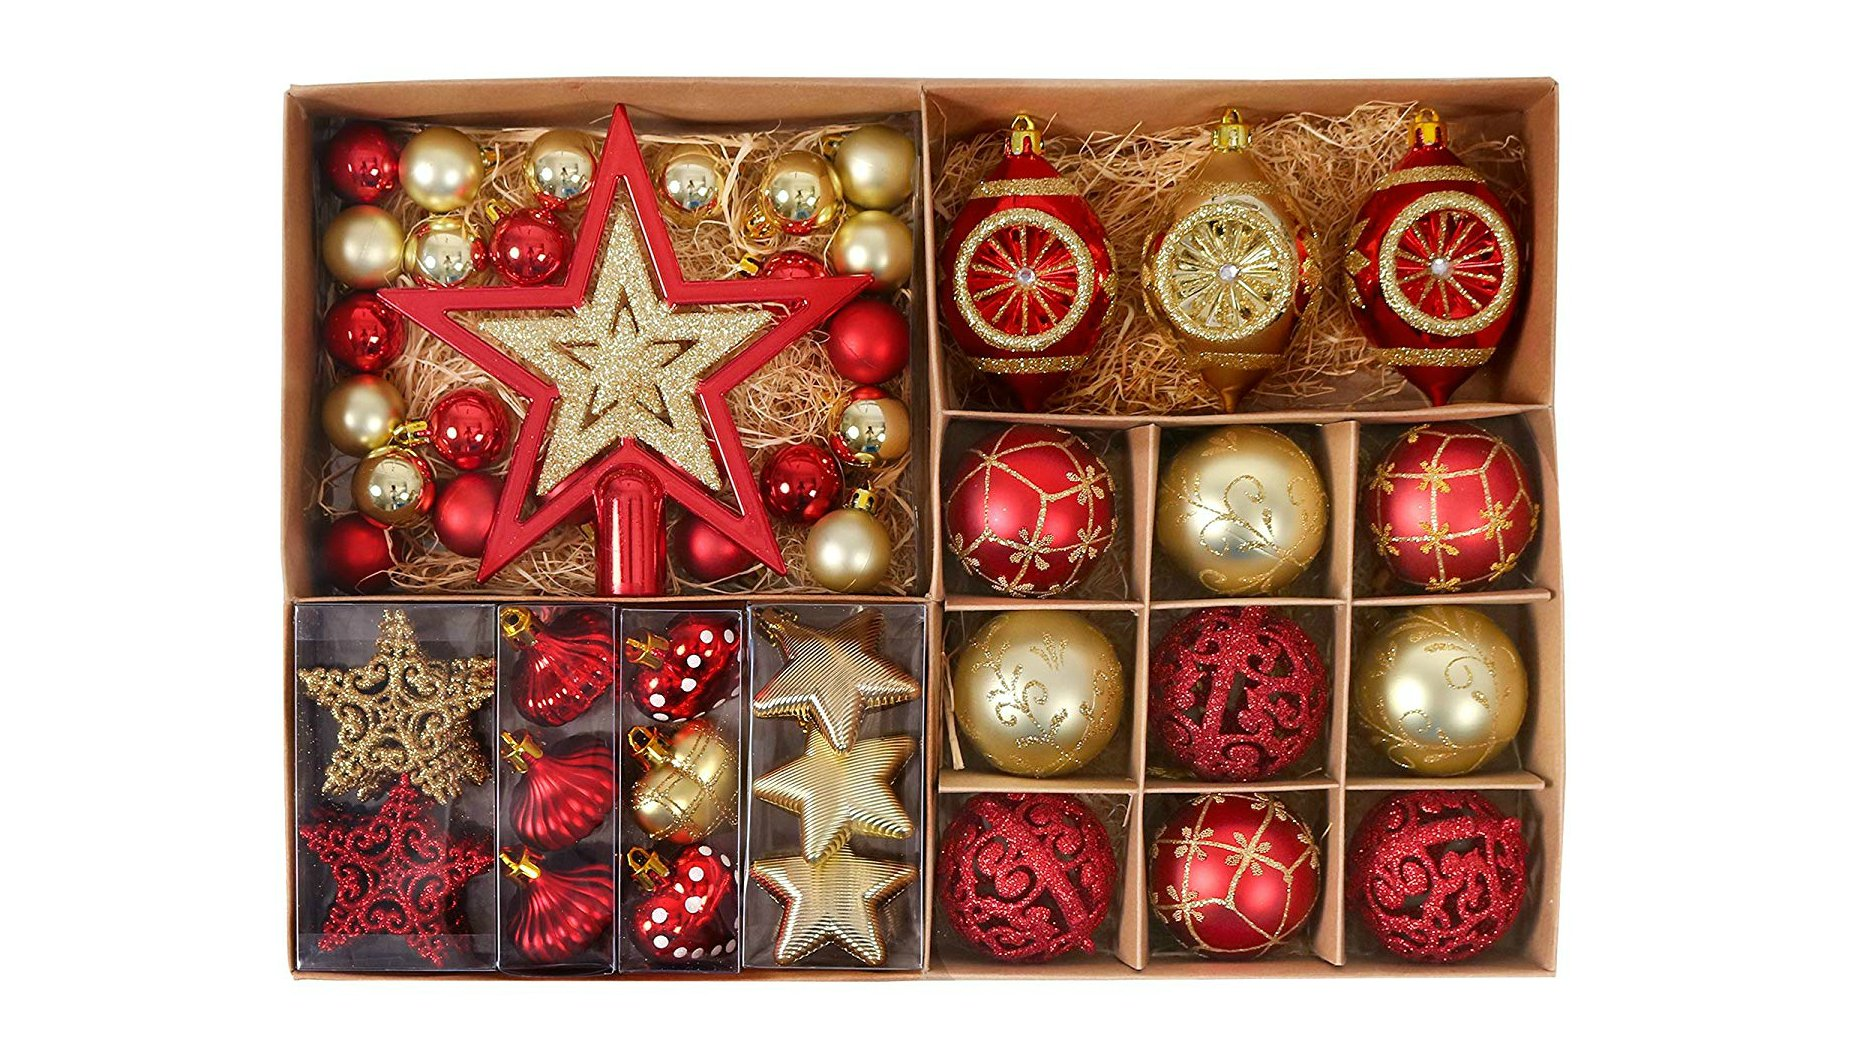 Best Christmas tree decorations 2018: Stylish Xmas props from £2.50 ...